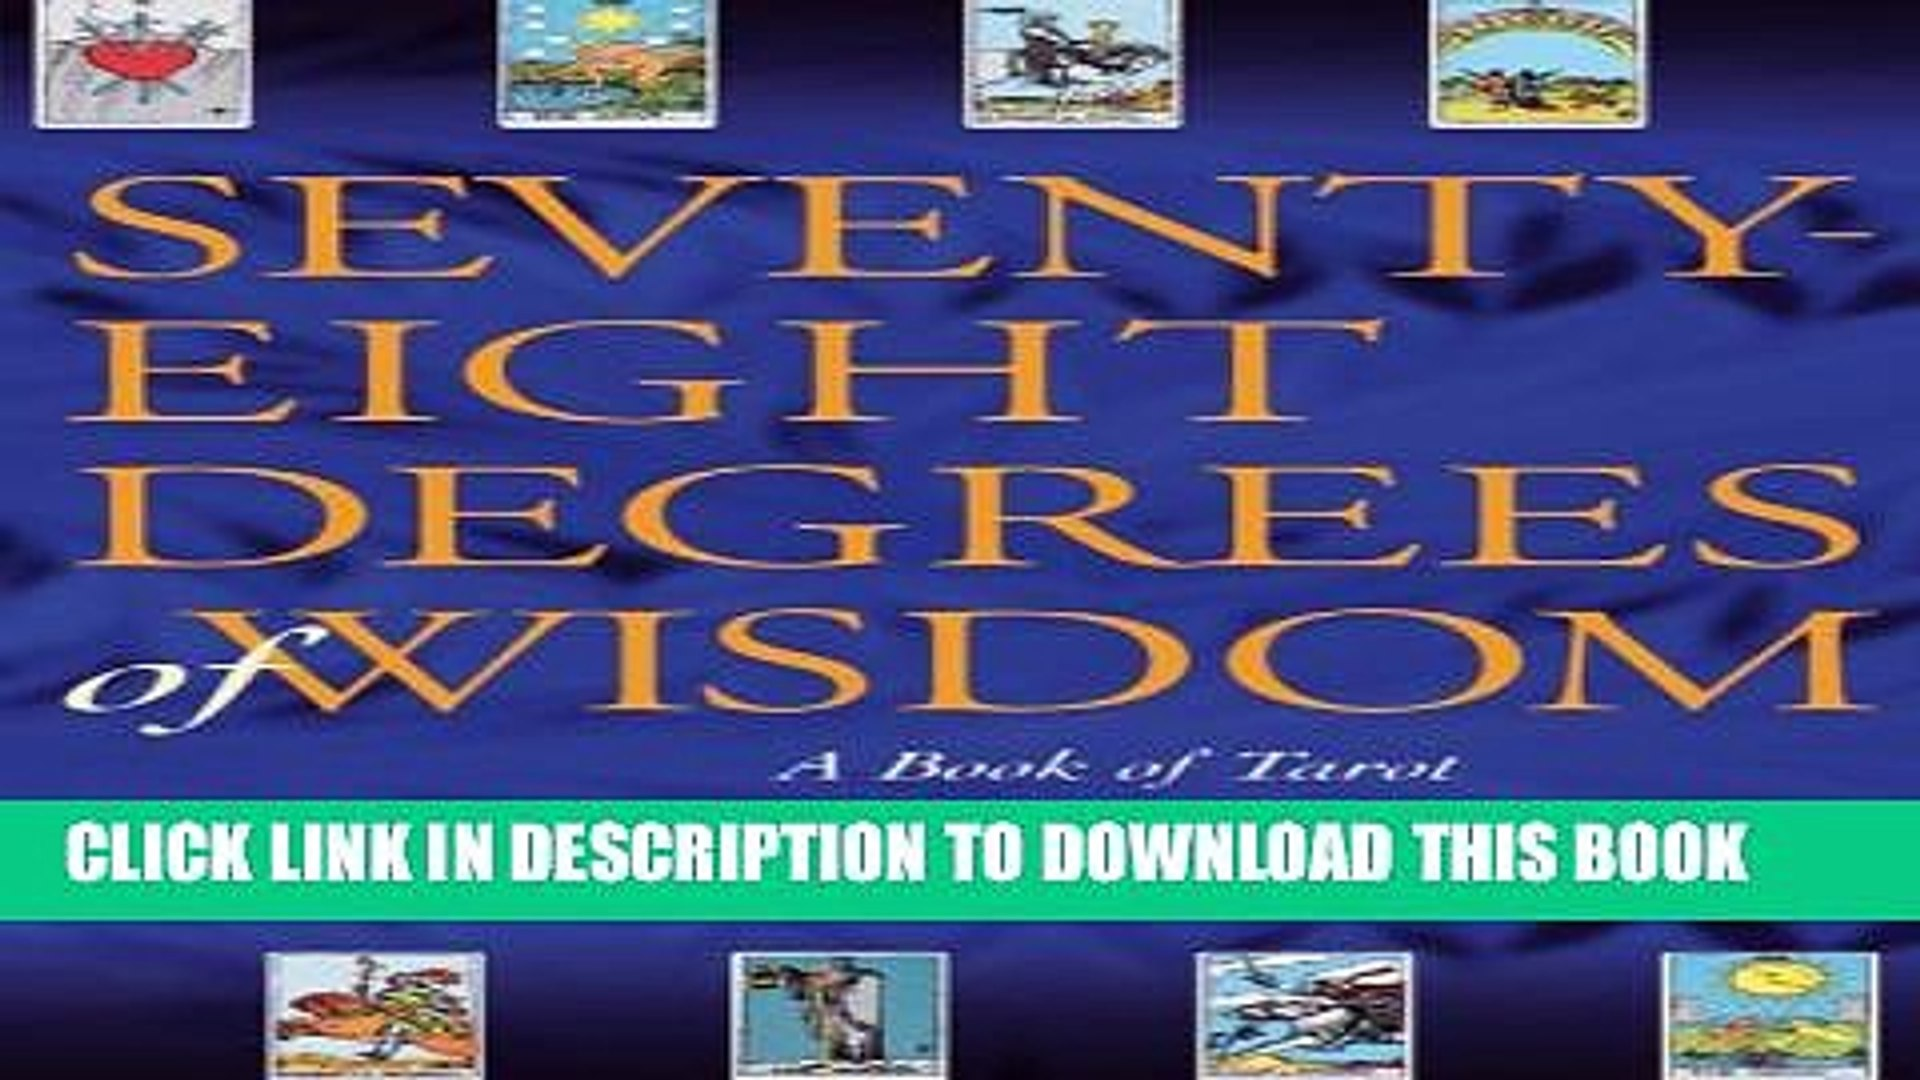 [PDF] Seventy-Eight Degrees of Wisdom: A Book of Tarot [Full Ebook]